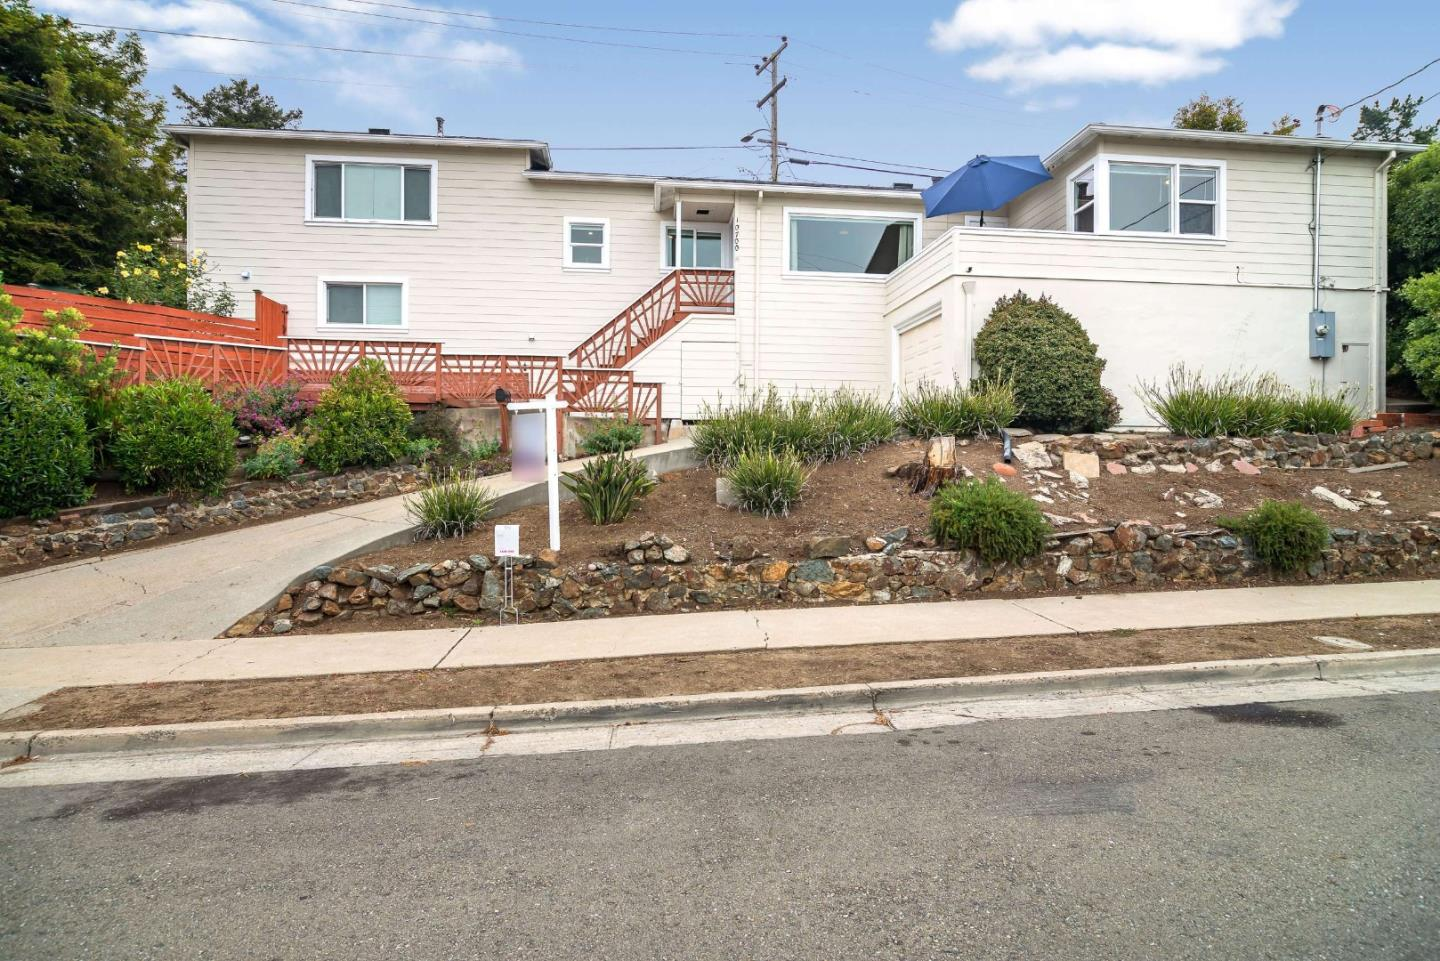 Image for 10700 Sheldon Street, <br>Oakland 94605